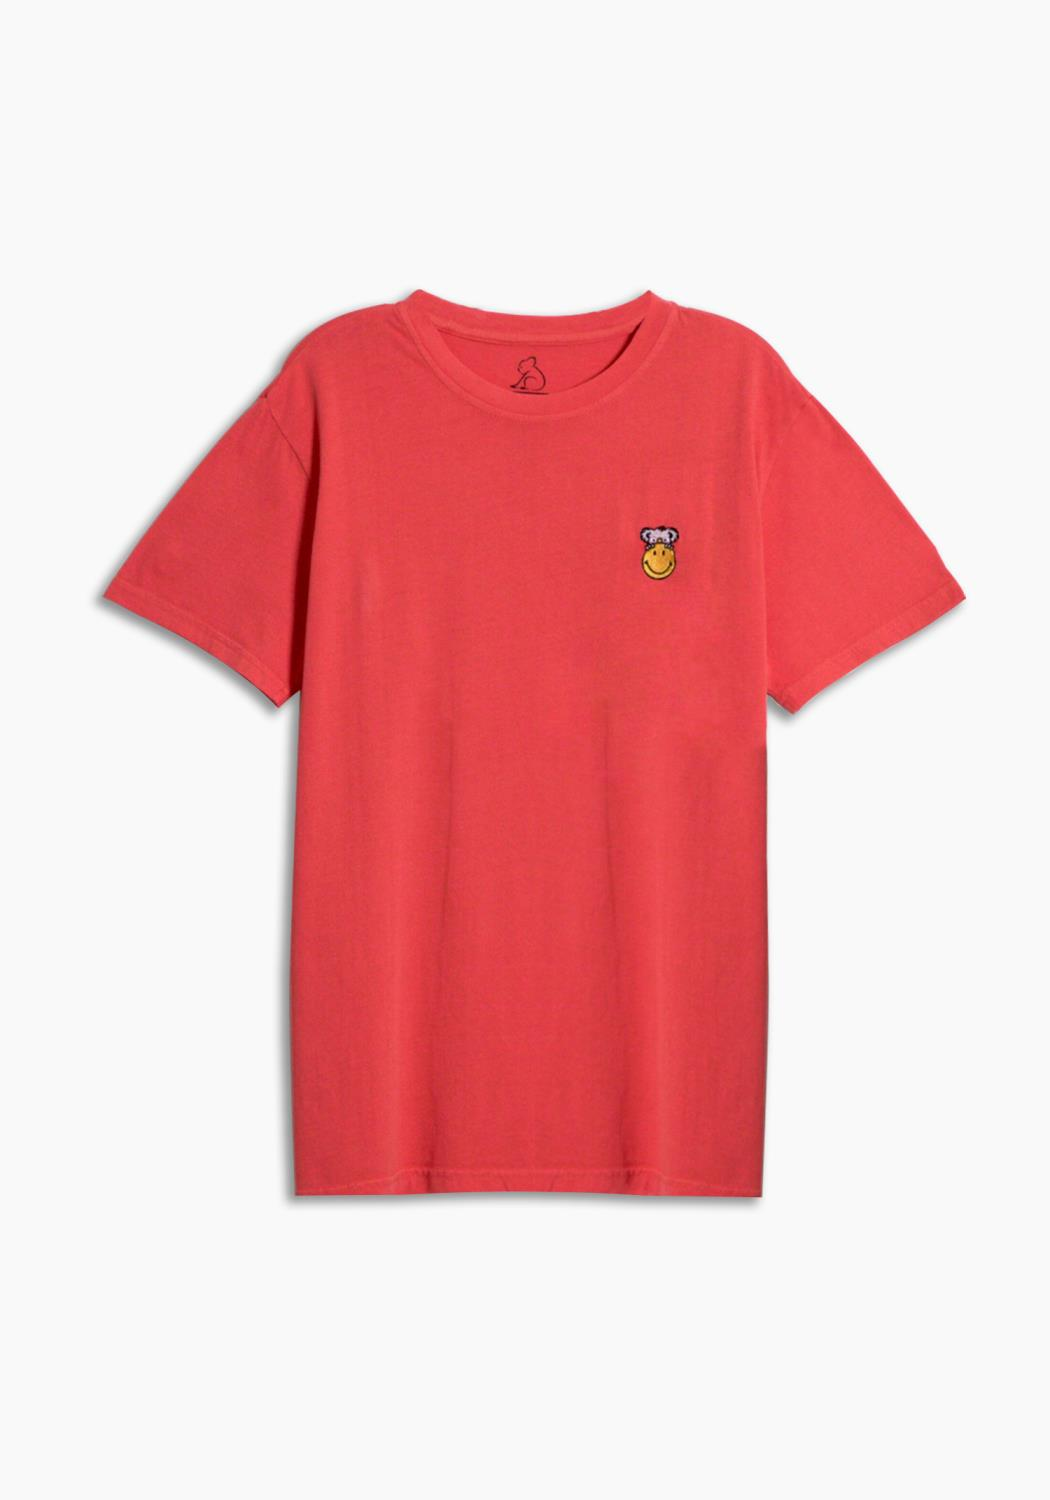 SMILEY x KUWALLA RED TEE